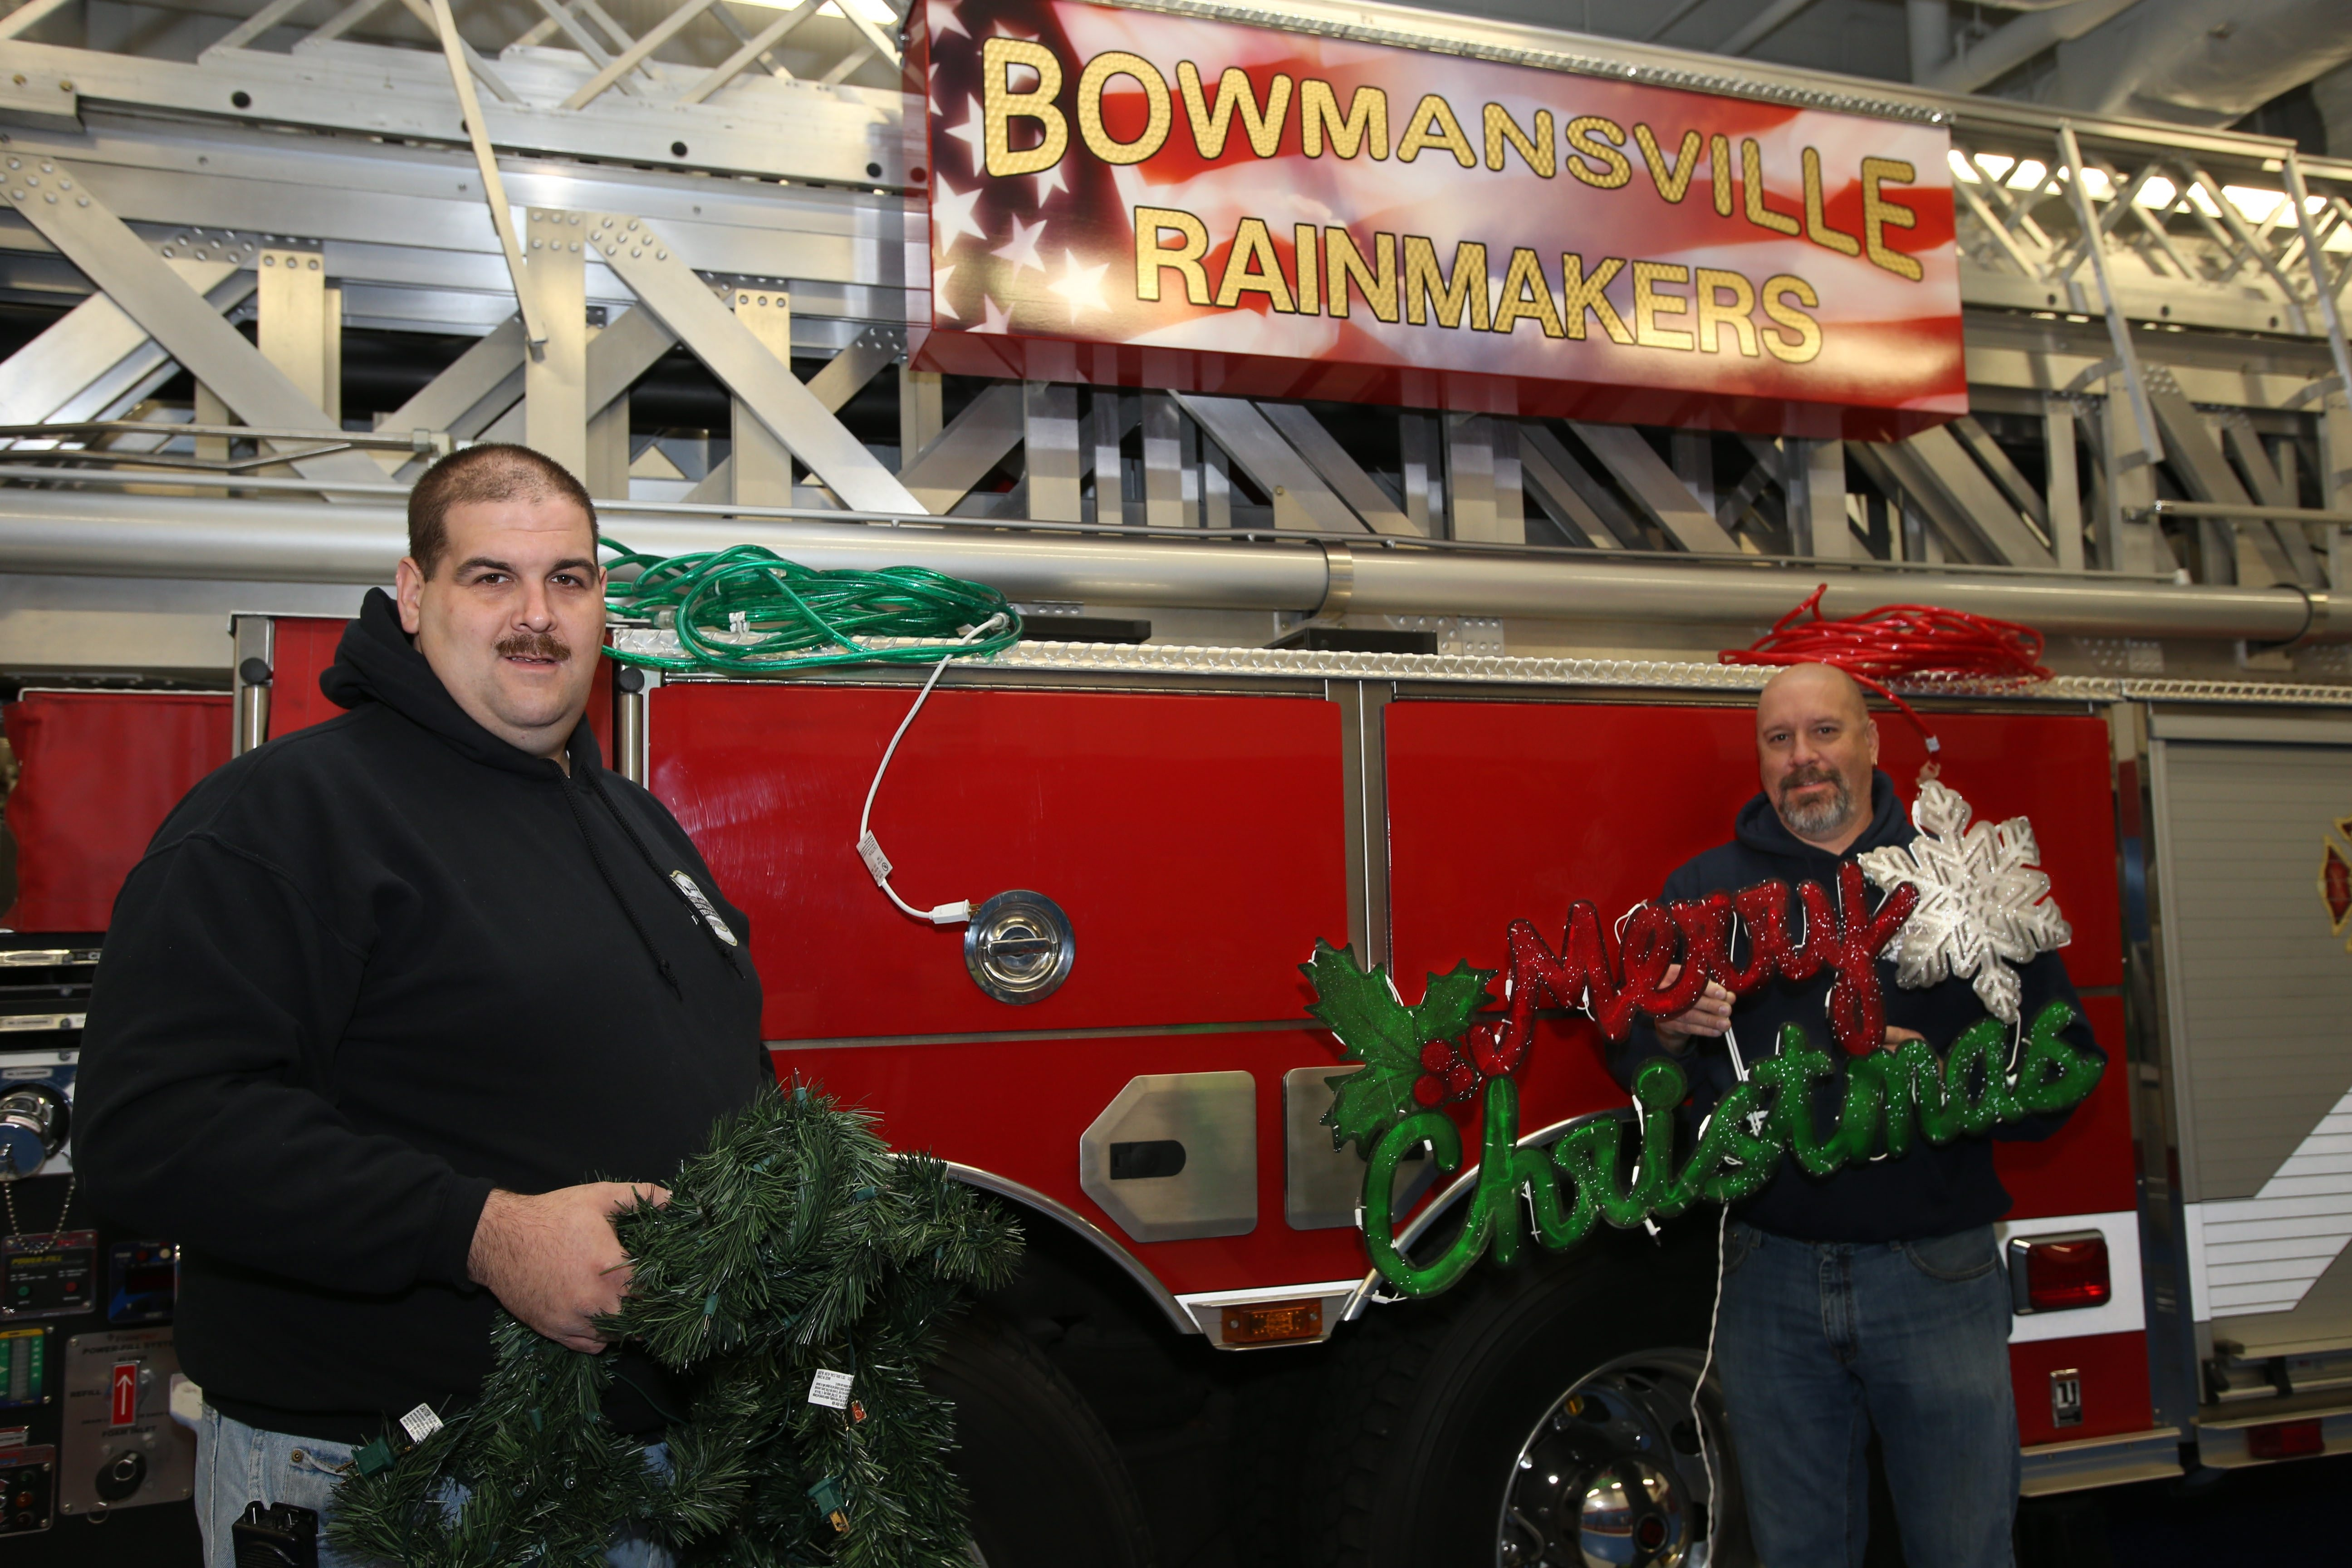 Firefighters Tom Trzepacz, left, and Jerry Enser, co-chairmen of the sixth annual Christmasville Fire Truck Parade, prepare to decorate the ladder truck at the Bowmansville Fire Station on Thursday. The parade will take place on Saturday.